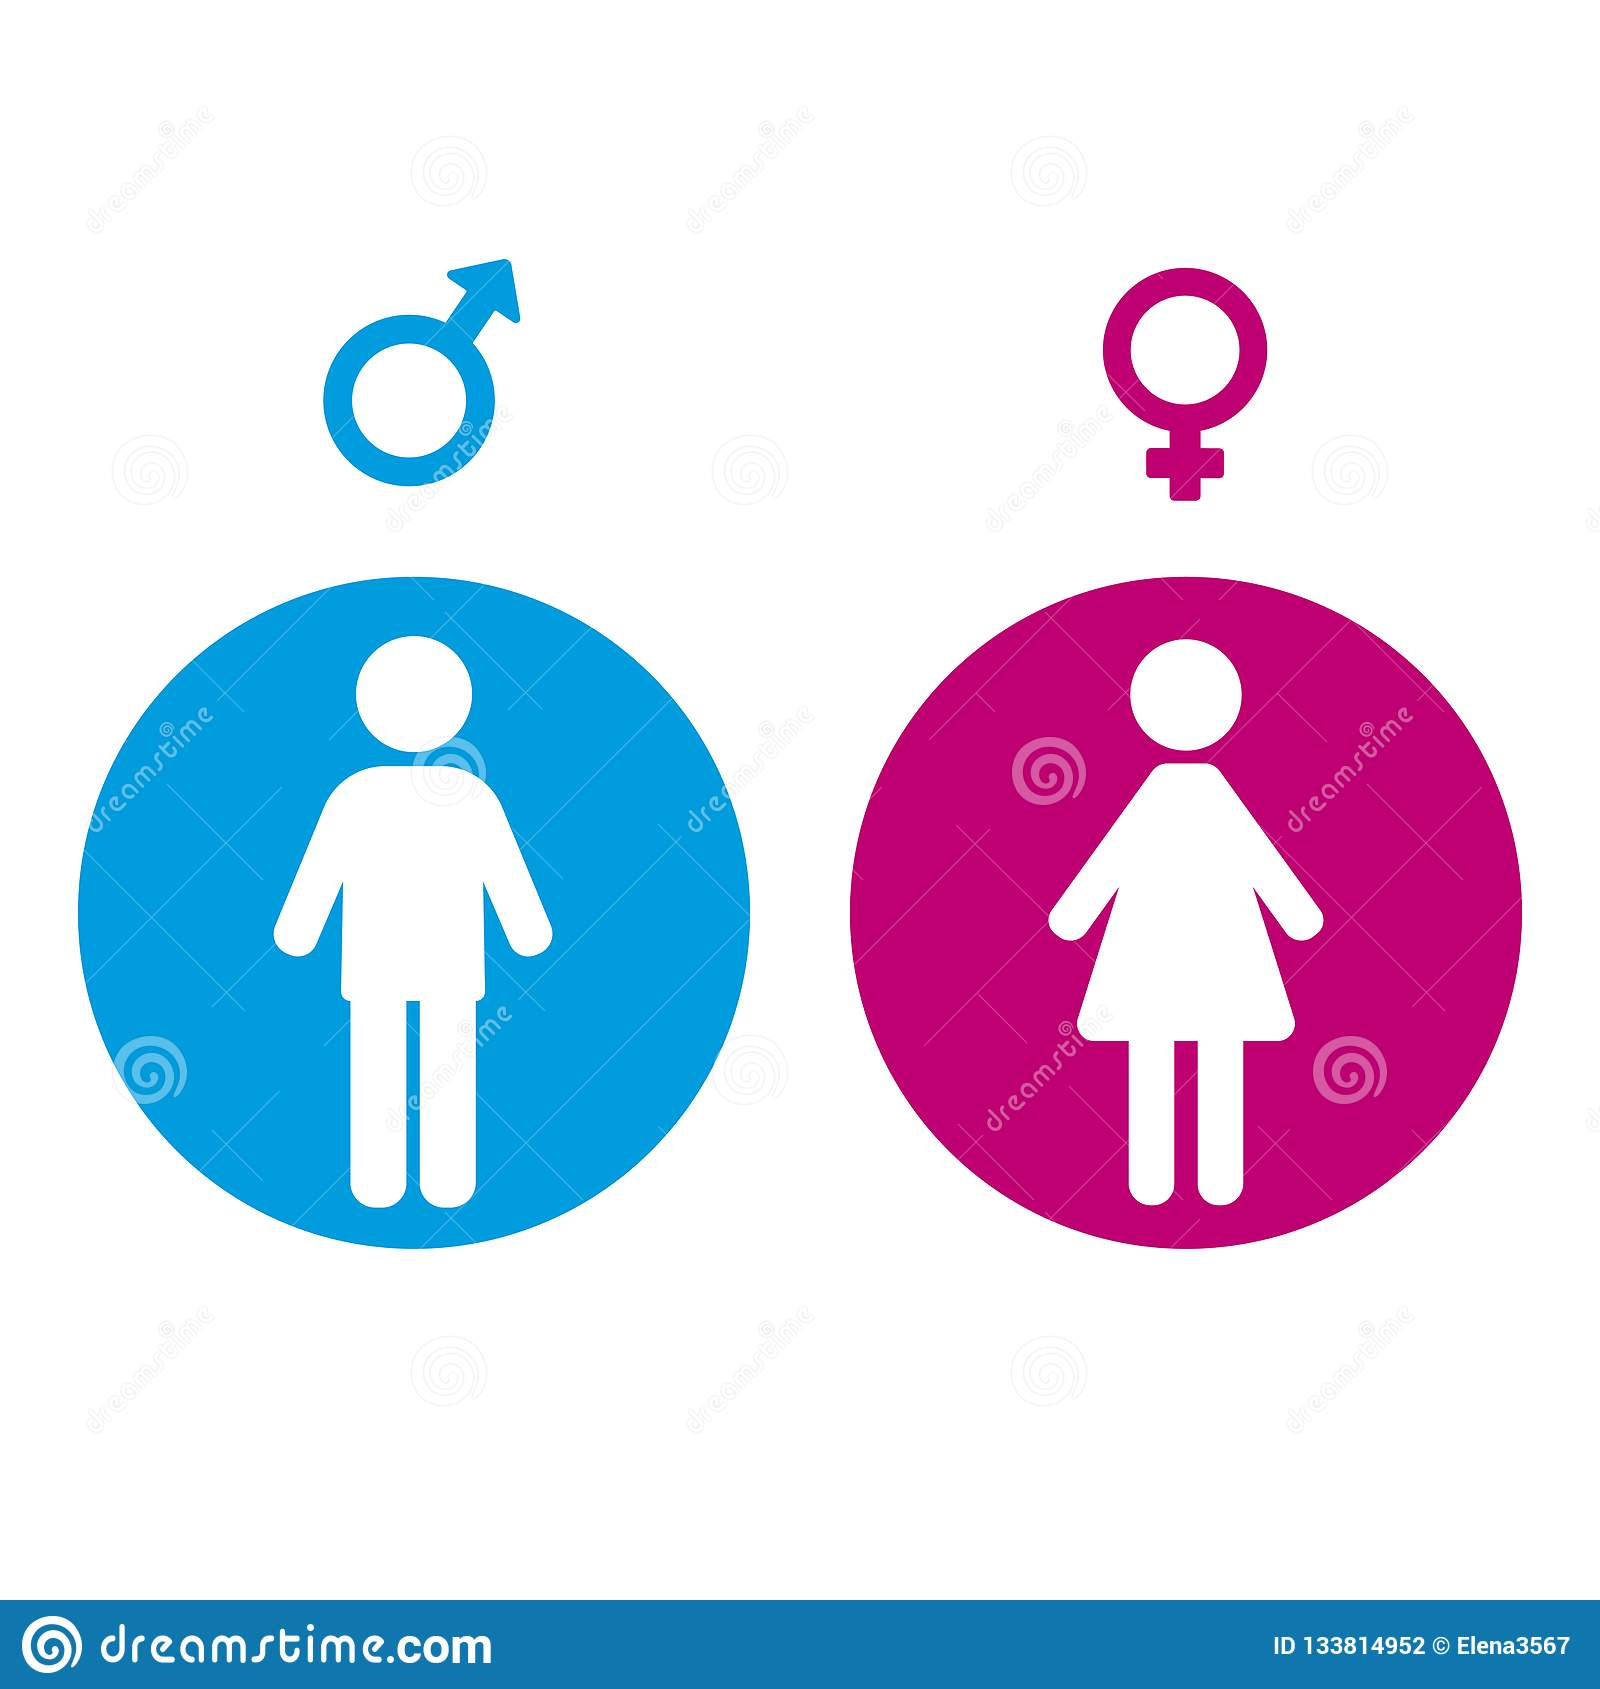 Gender Symbol Of A Man And Woman In A Circle Stock Vector Illustration Of Element Concept 133814952